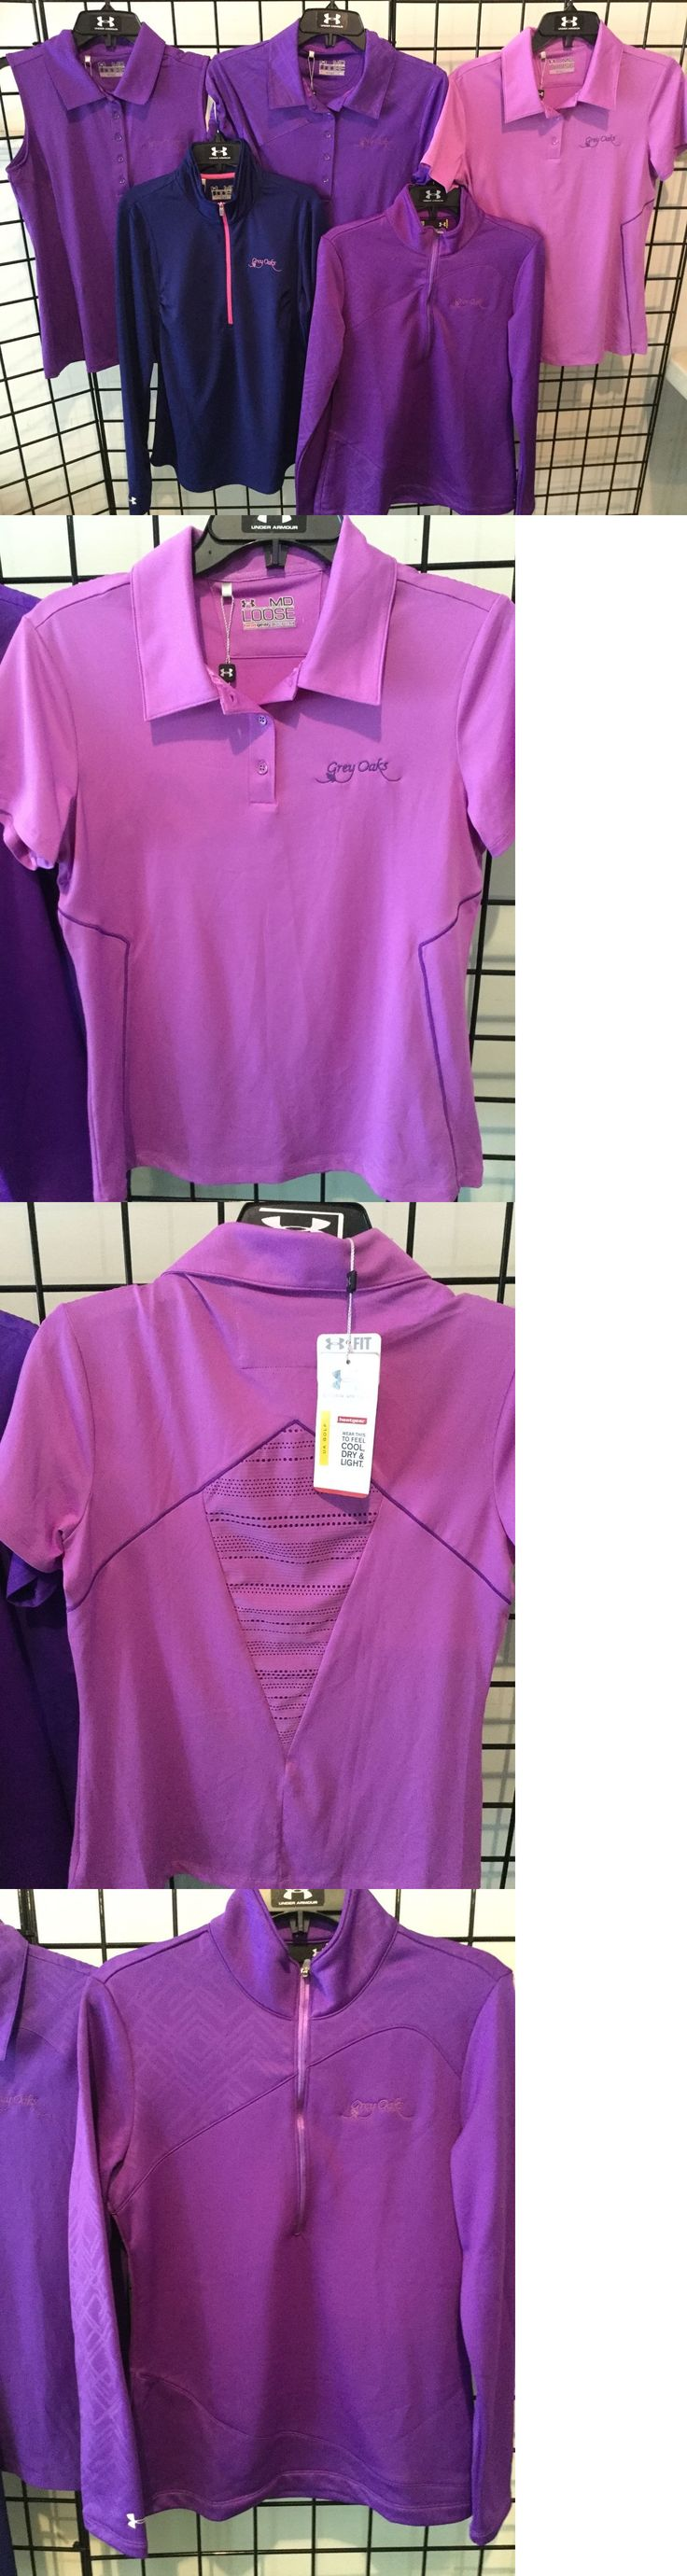 Shirts Tops and Sweaters 181149: Under Armour Entire Lot Of Womens Golf Tops -Nwt-Medium $$ Great Value Purples -> BUY IT NOW ONLY: $55 on eBay!